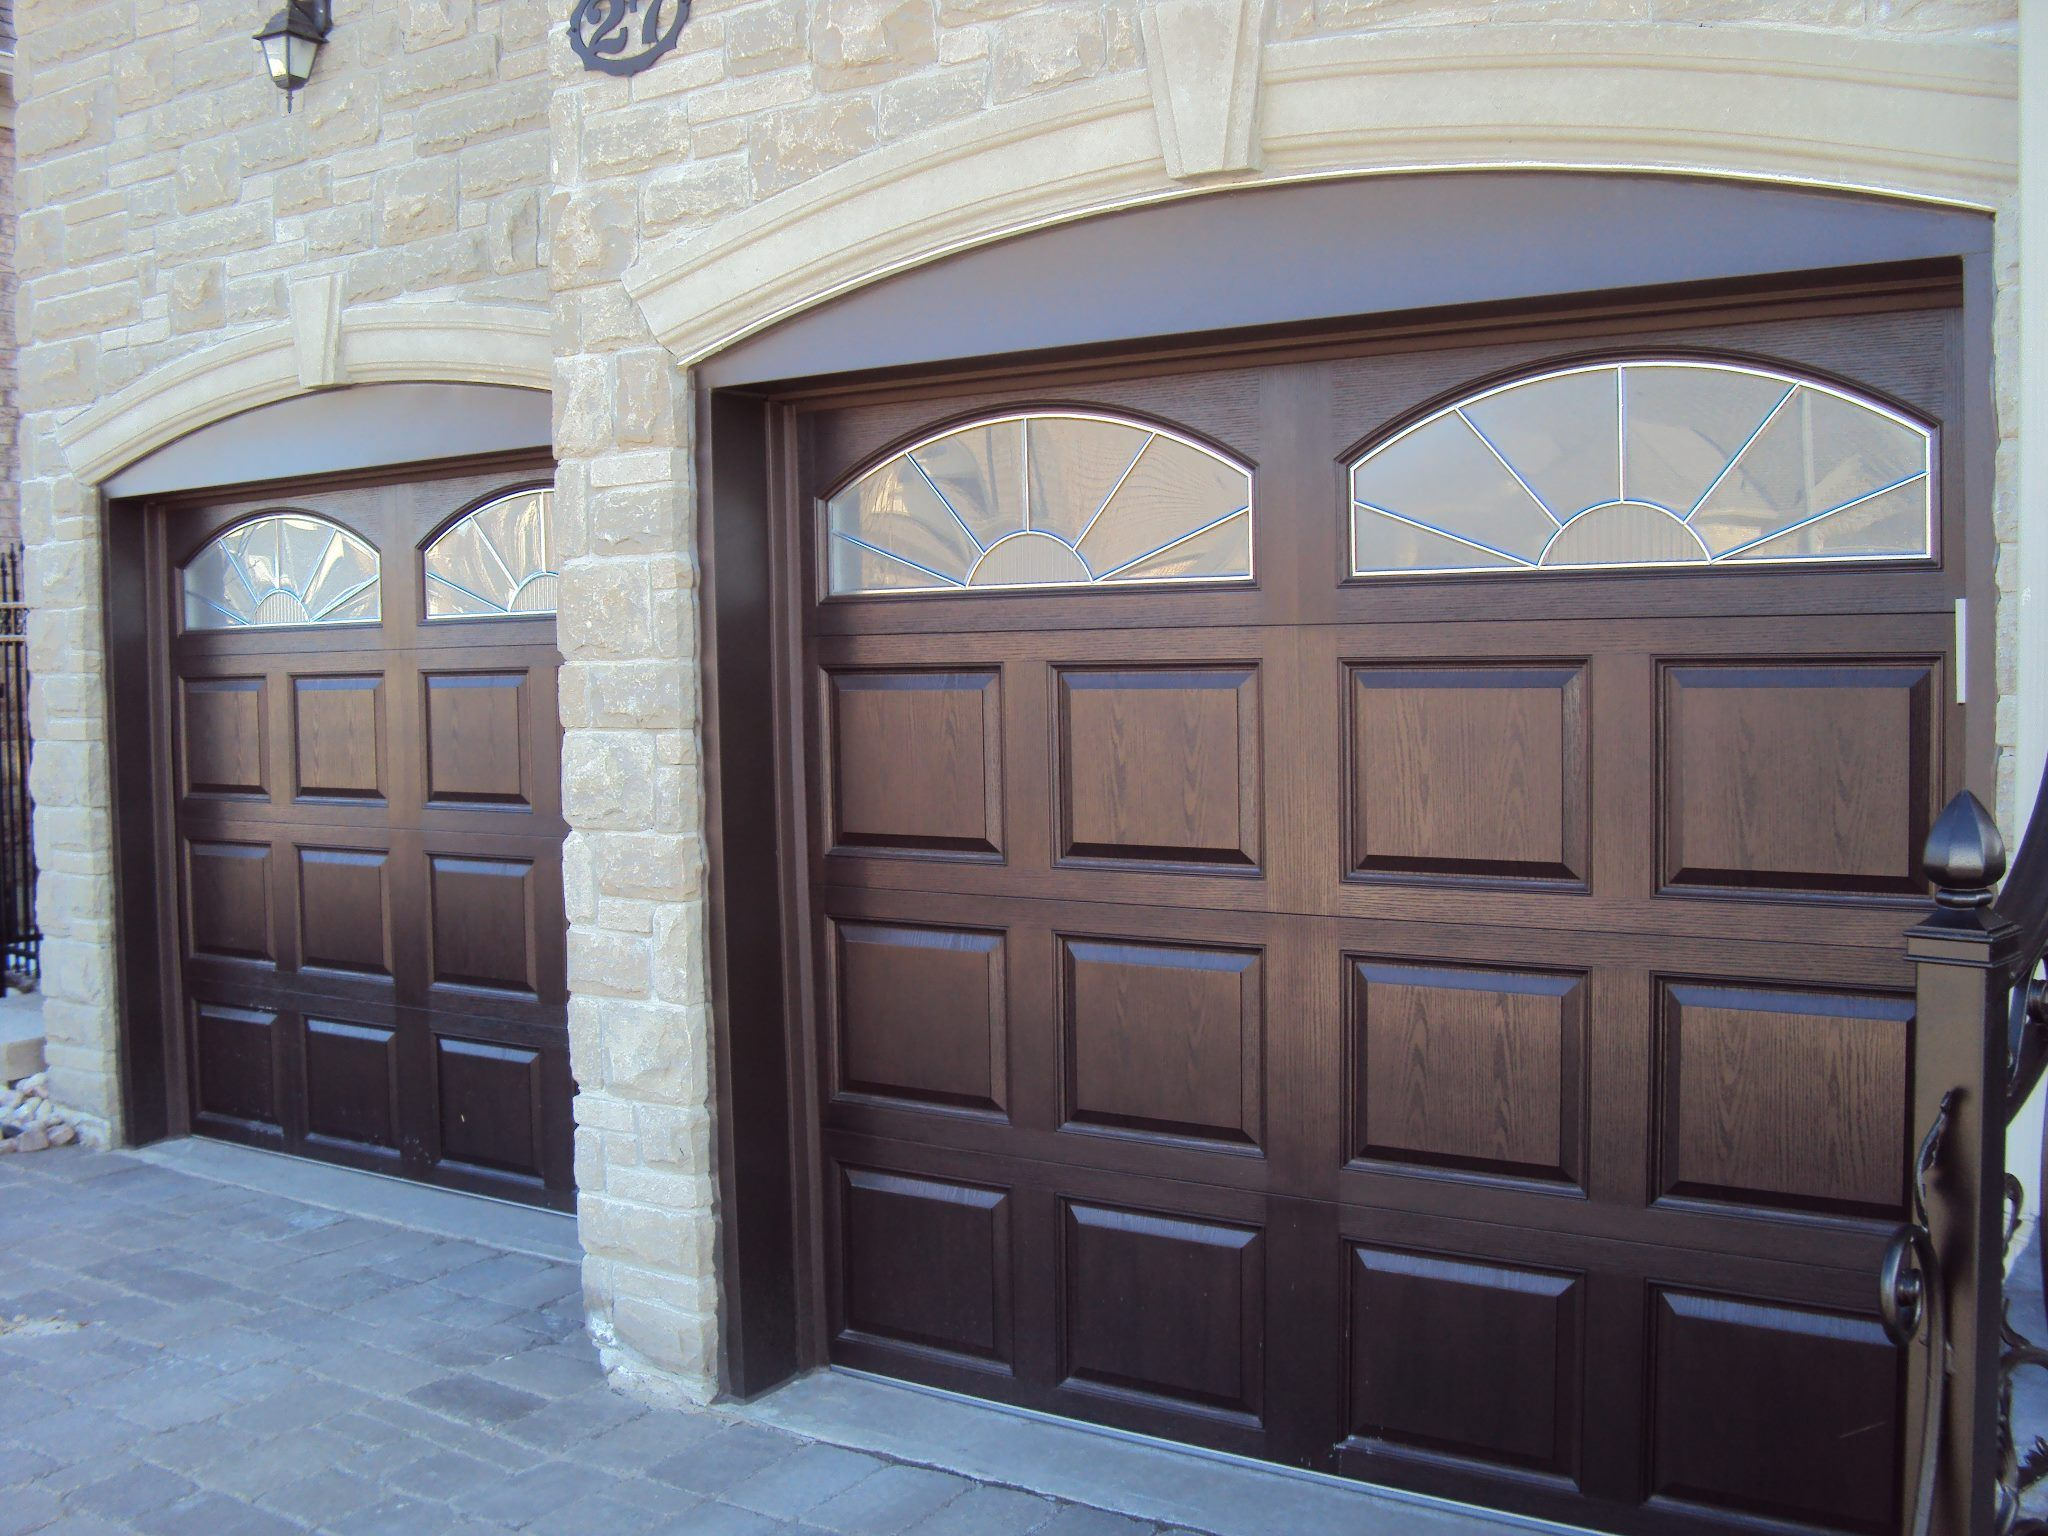 dependable installation photos in fiberglass these panel available curb madison of dalton appeal wi wayne highlight horizontial door sectional garage walnut doors through the